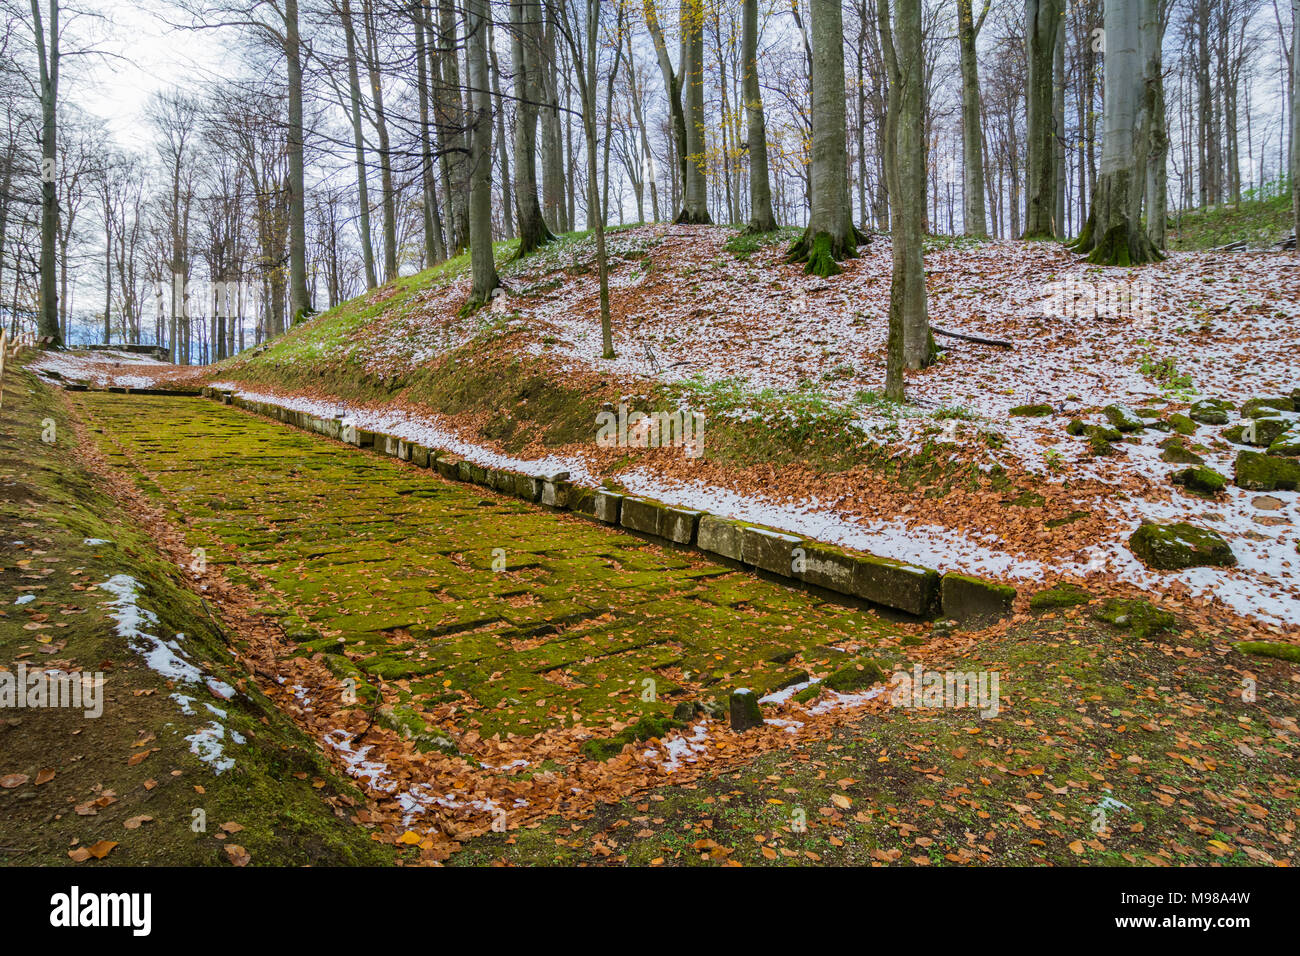 Paved ancient dacian road in Sarmizegetusa, capital of the Dacian Empire, UNESCO World Heritage Site Stock Photo